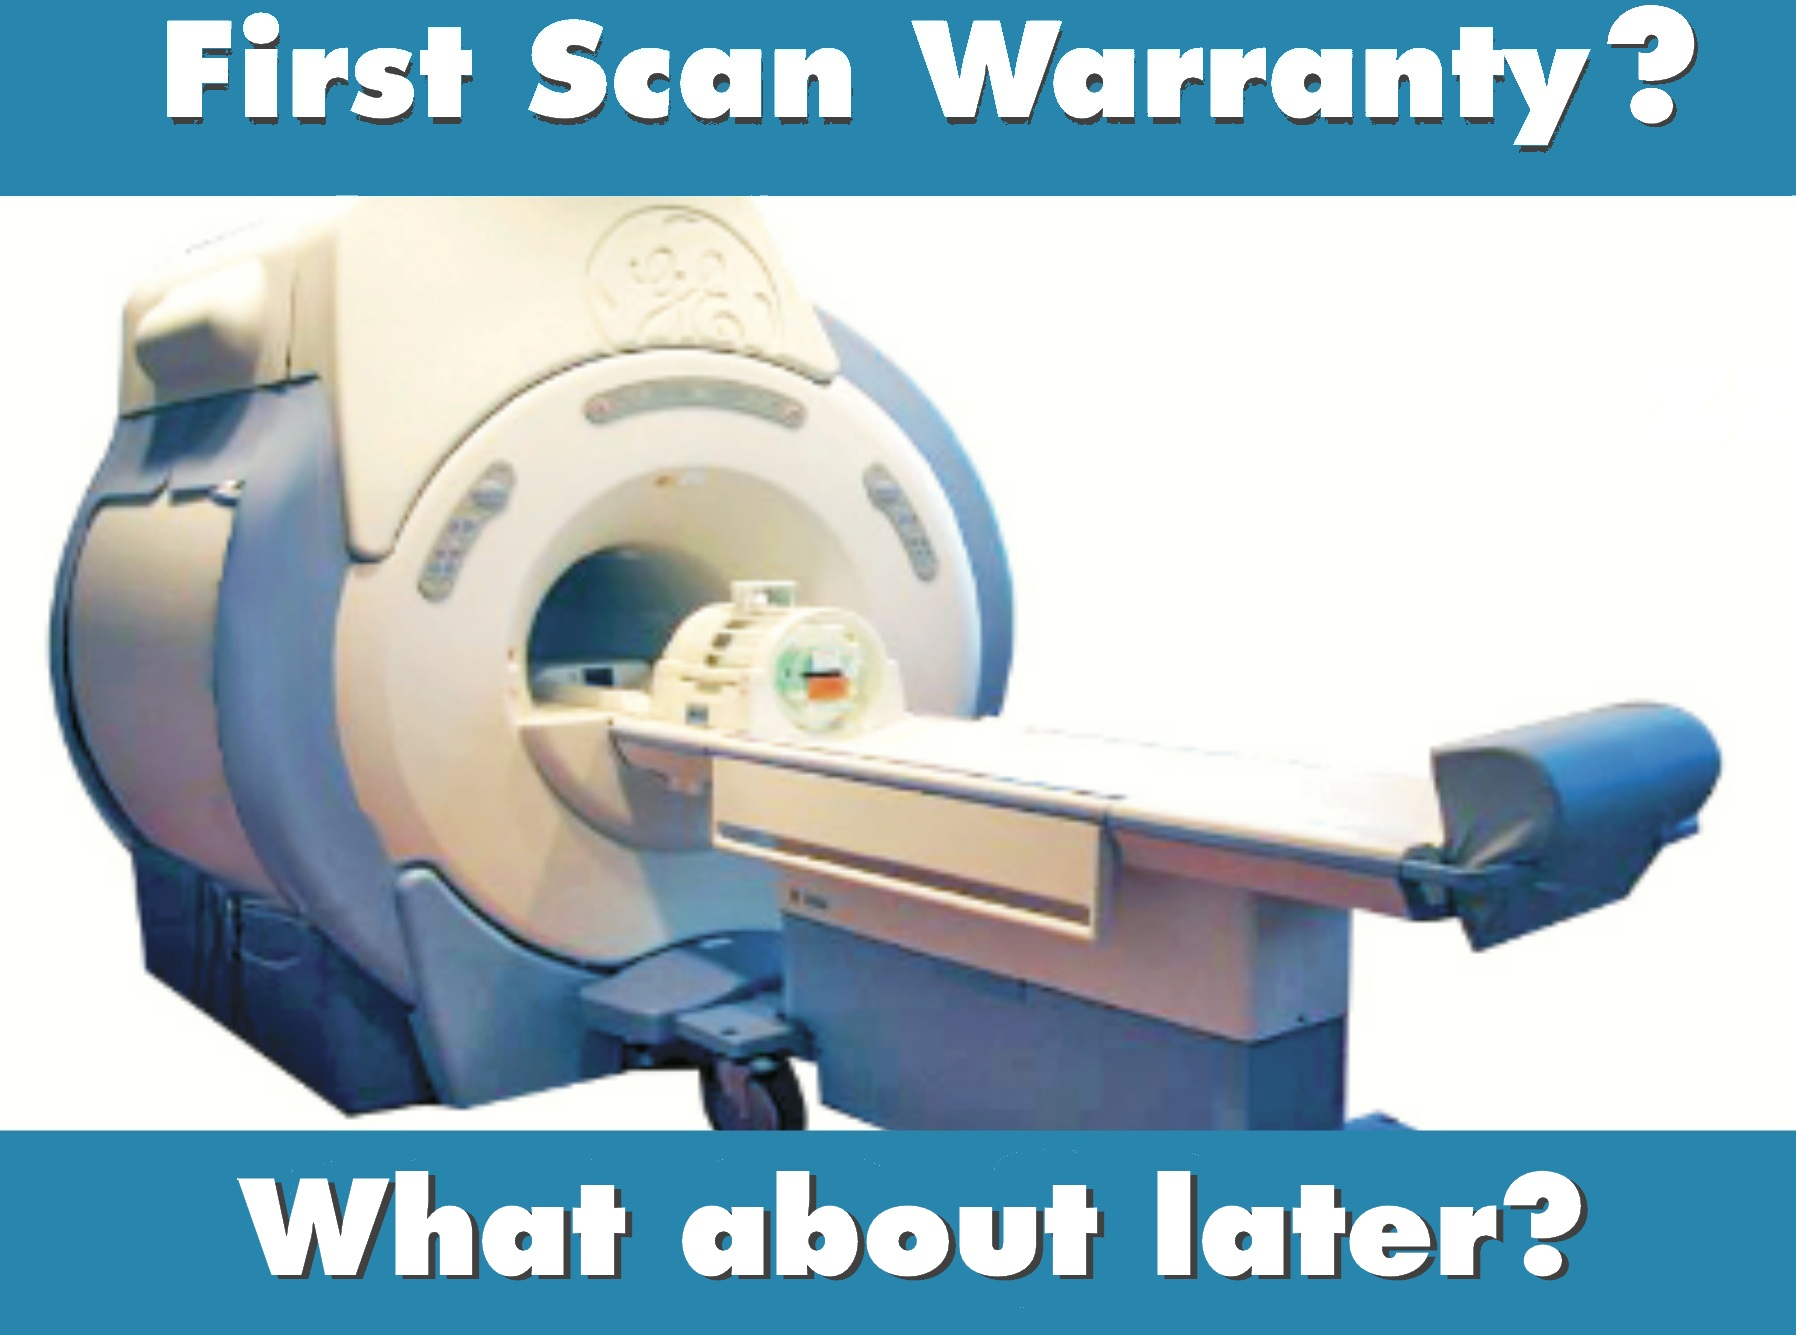 Imaging Equipment Warranties